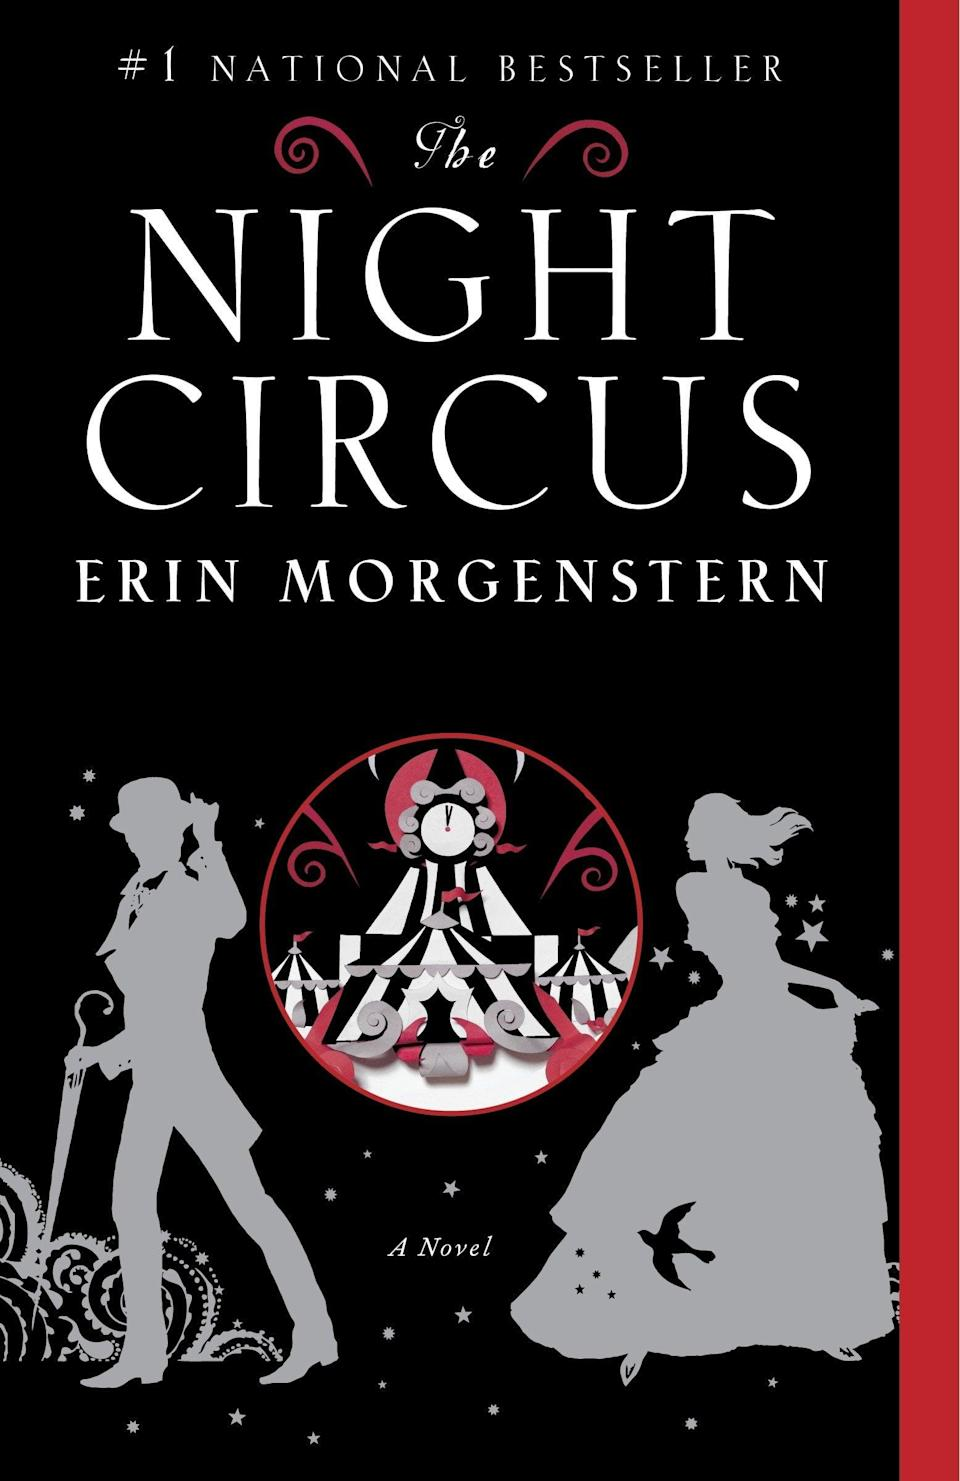 <p>Erin Morgenstern's <span><strong>The Night Circus</strong></span> oozes atmosphere. The titular circus arrives in town unannounced and only at night, and while people come to enjoy the spectacle, there's real magic and a complicated love story brewing behind the scenes. Thanks to the mysterious carnival, the lush descriptions of cool nights, and the magical plot, this book is the ultimate Fall read.</p>